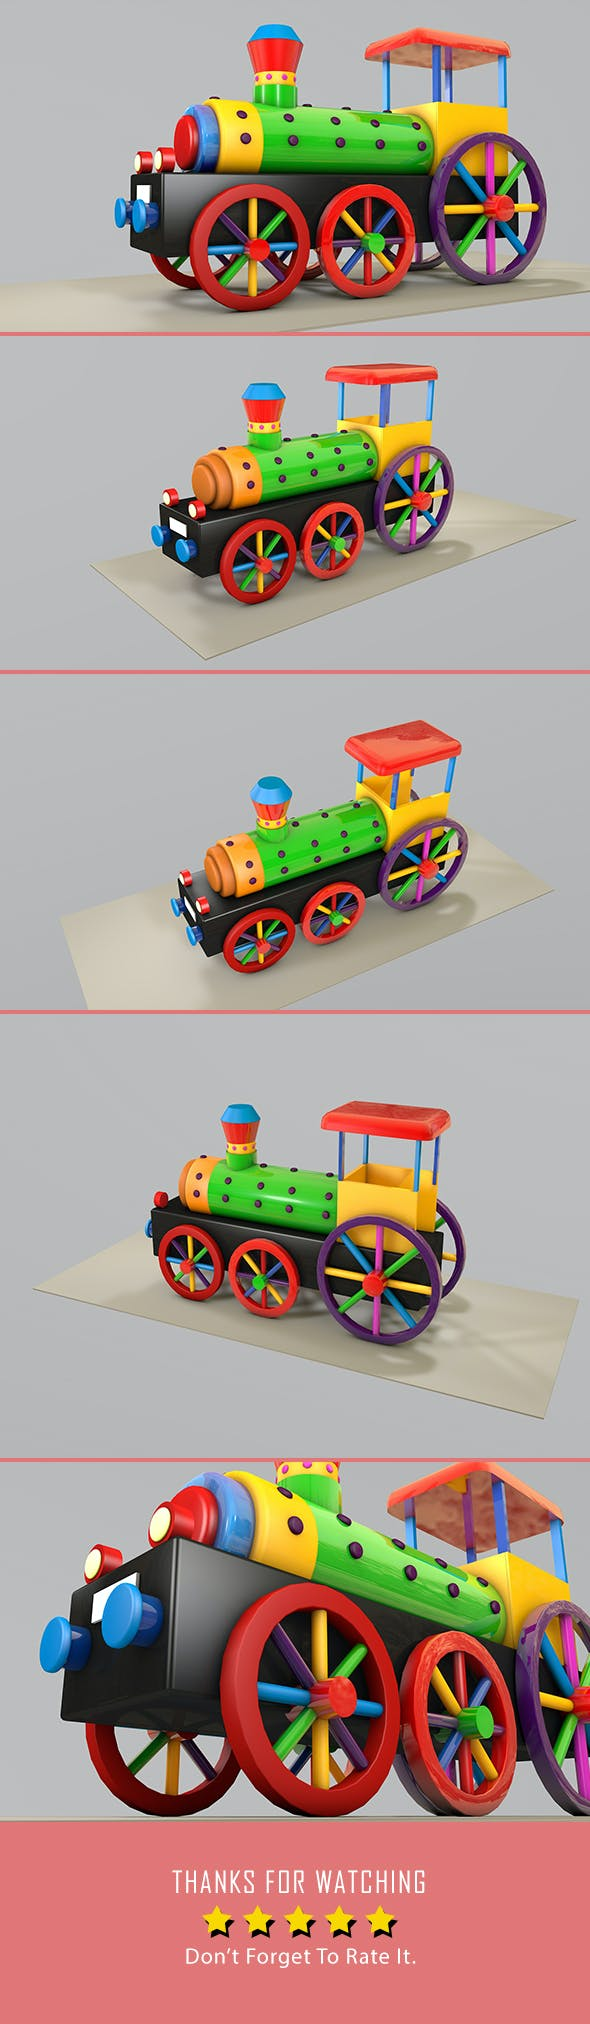 Toy Train 3d Model - 3DOcean Item for Sale